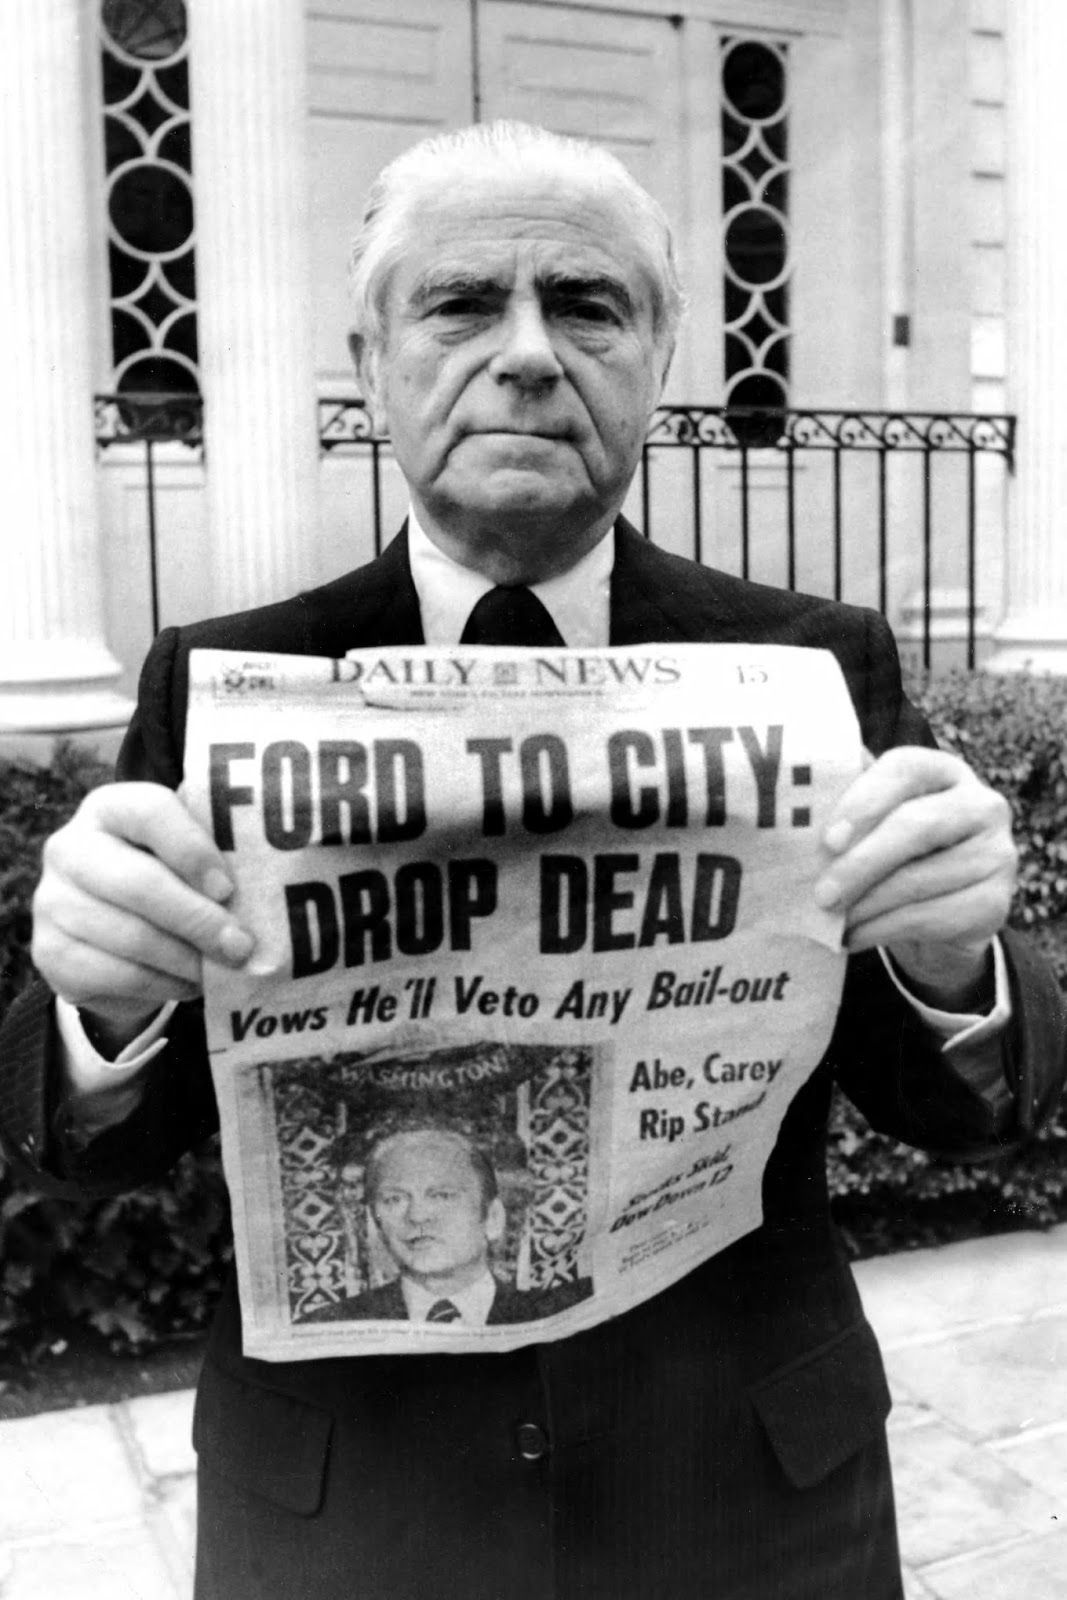 Ford To City Drop Dead 1975 City New York York